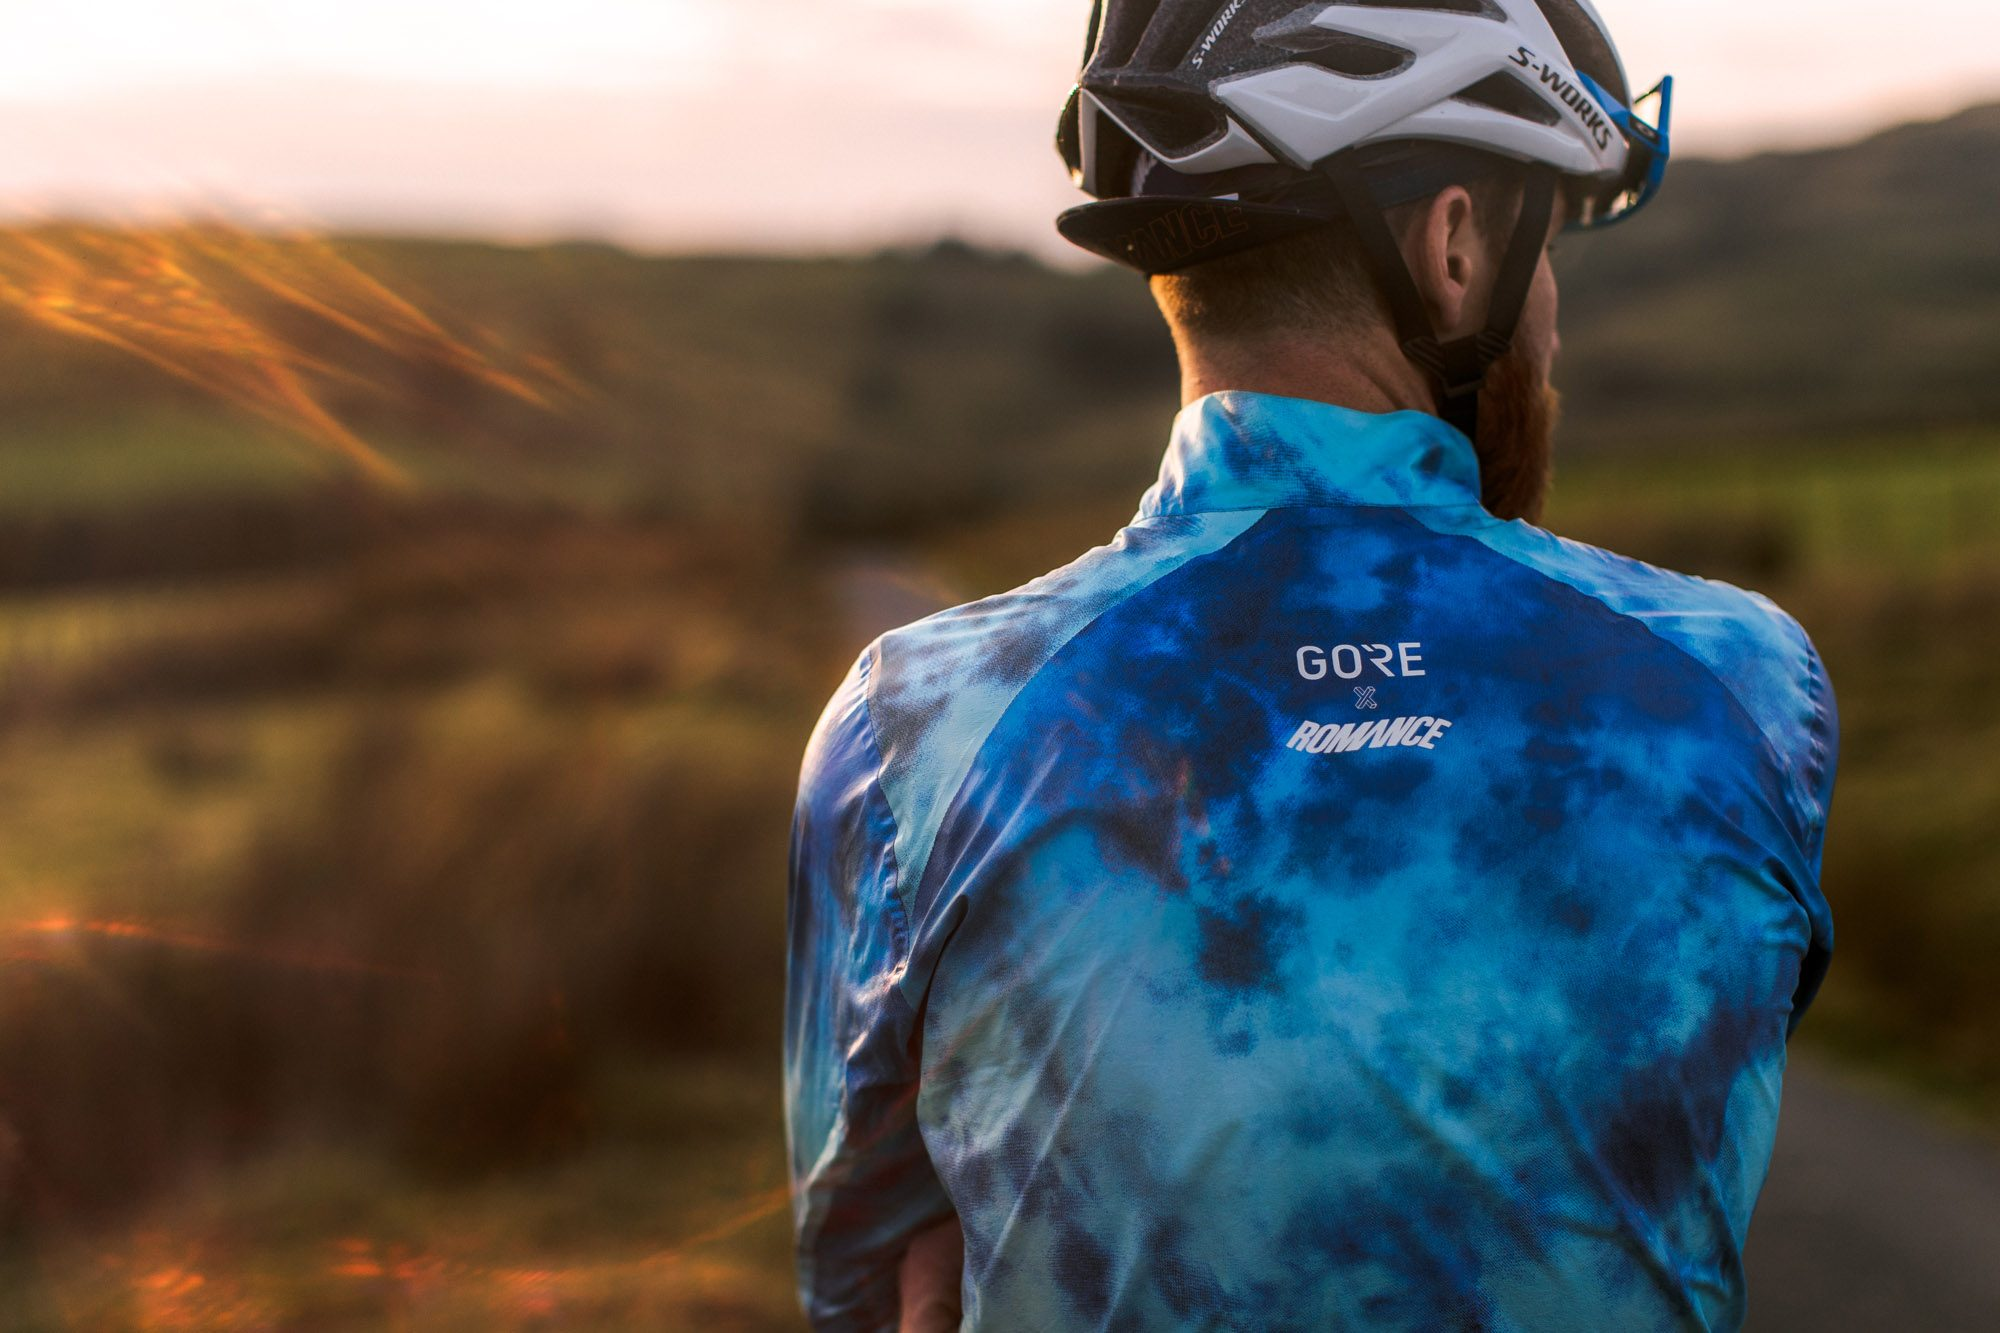 Gore x Romance Shakedry jacket | colourful Gore Tex cycling